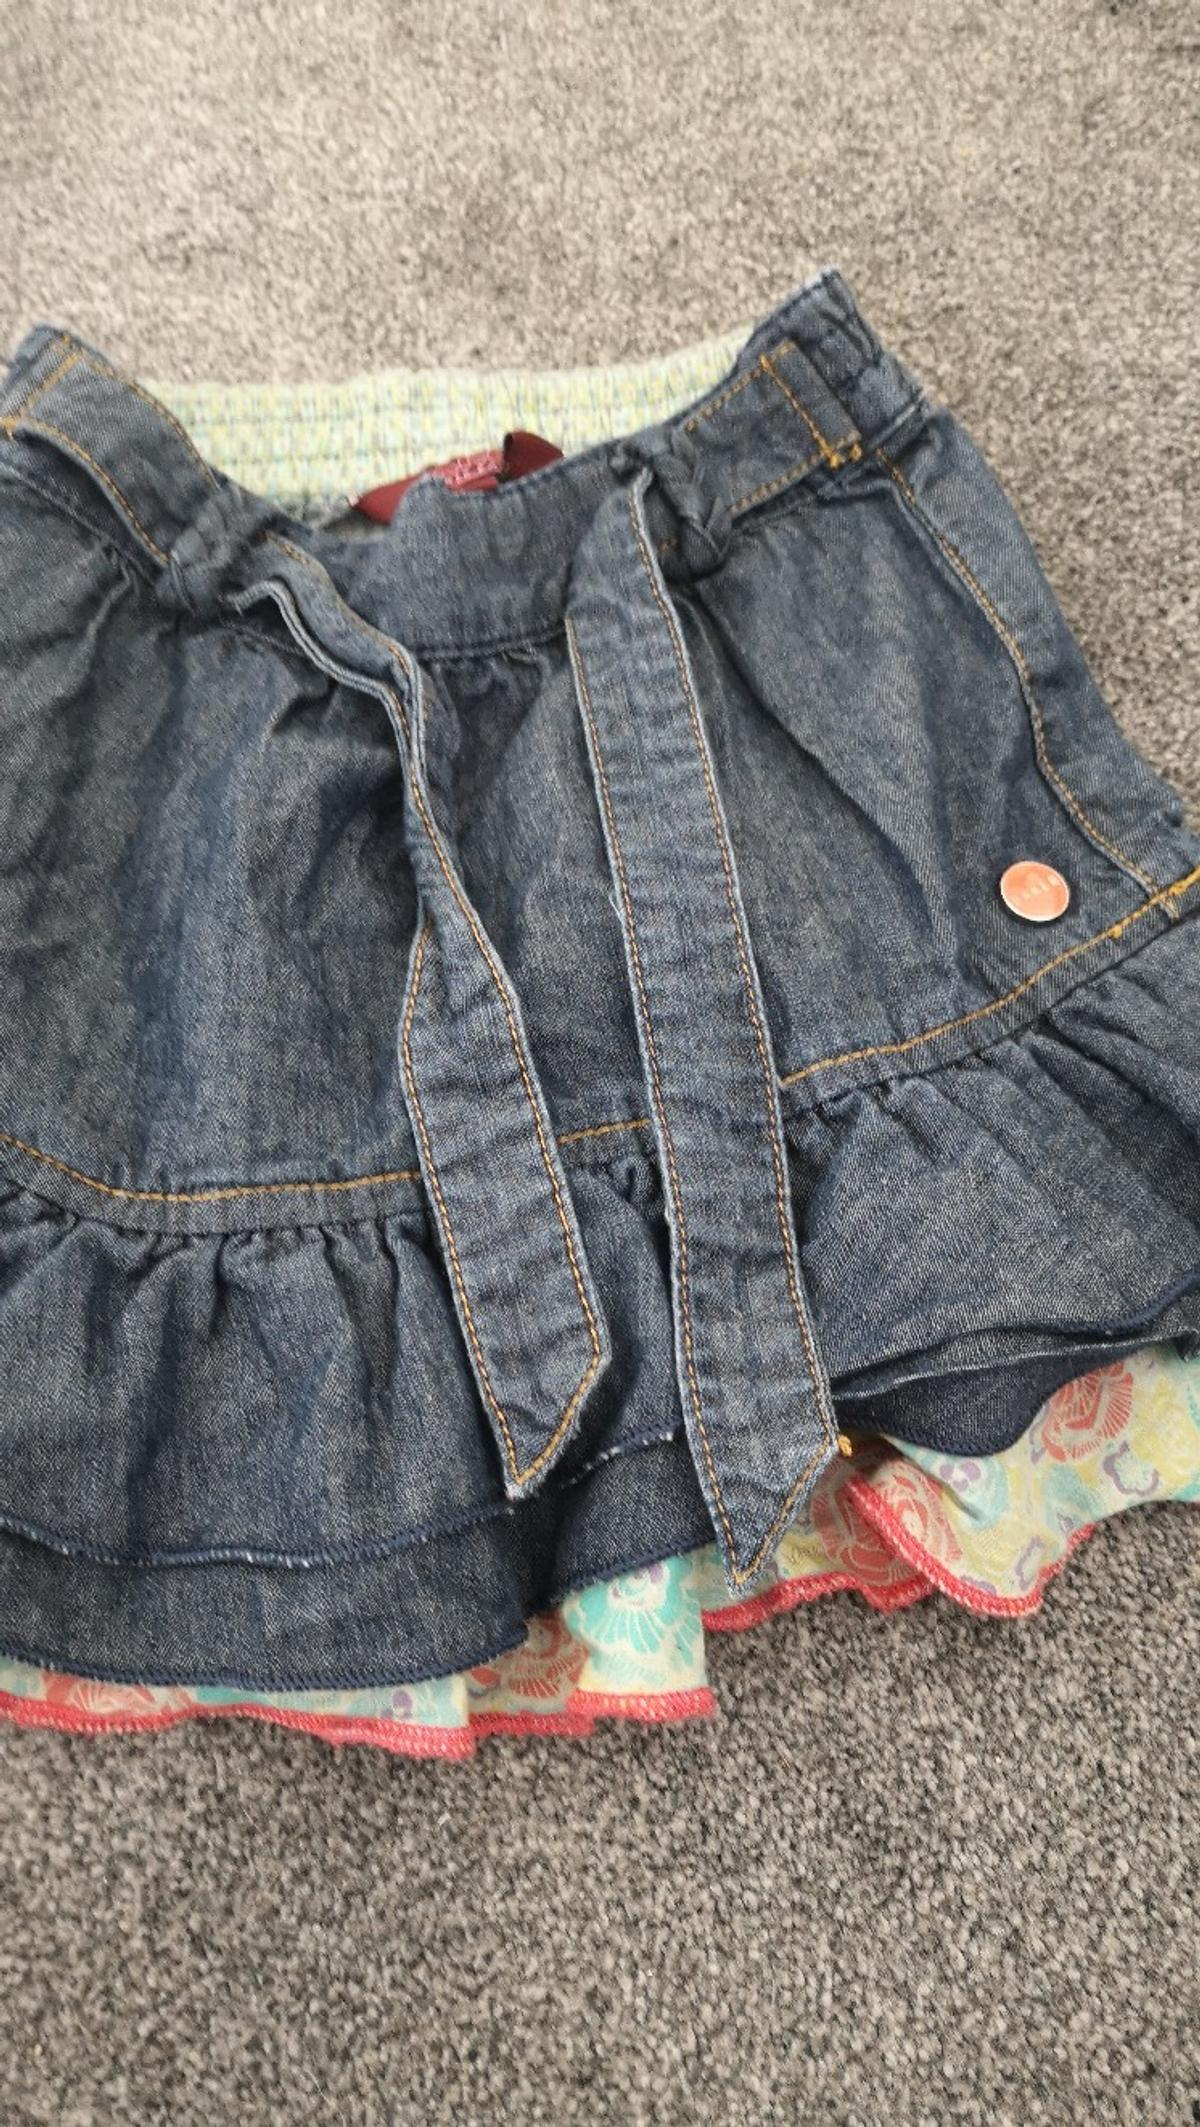 skirt immaculate 4-5 yrs